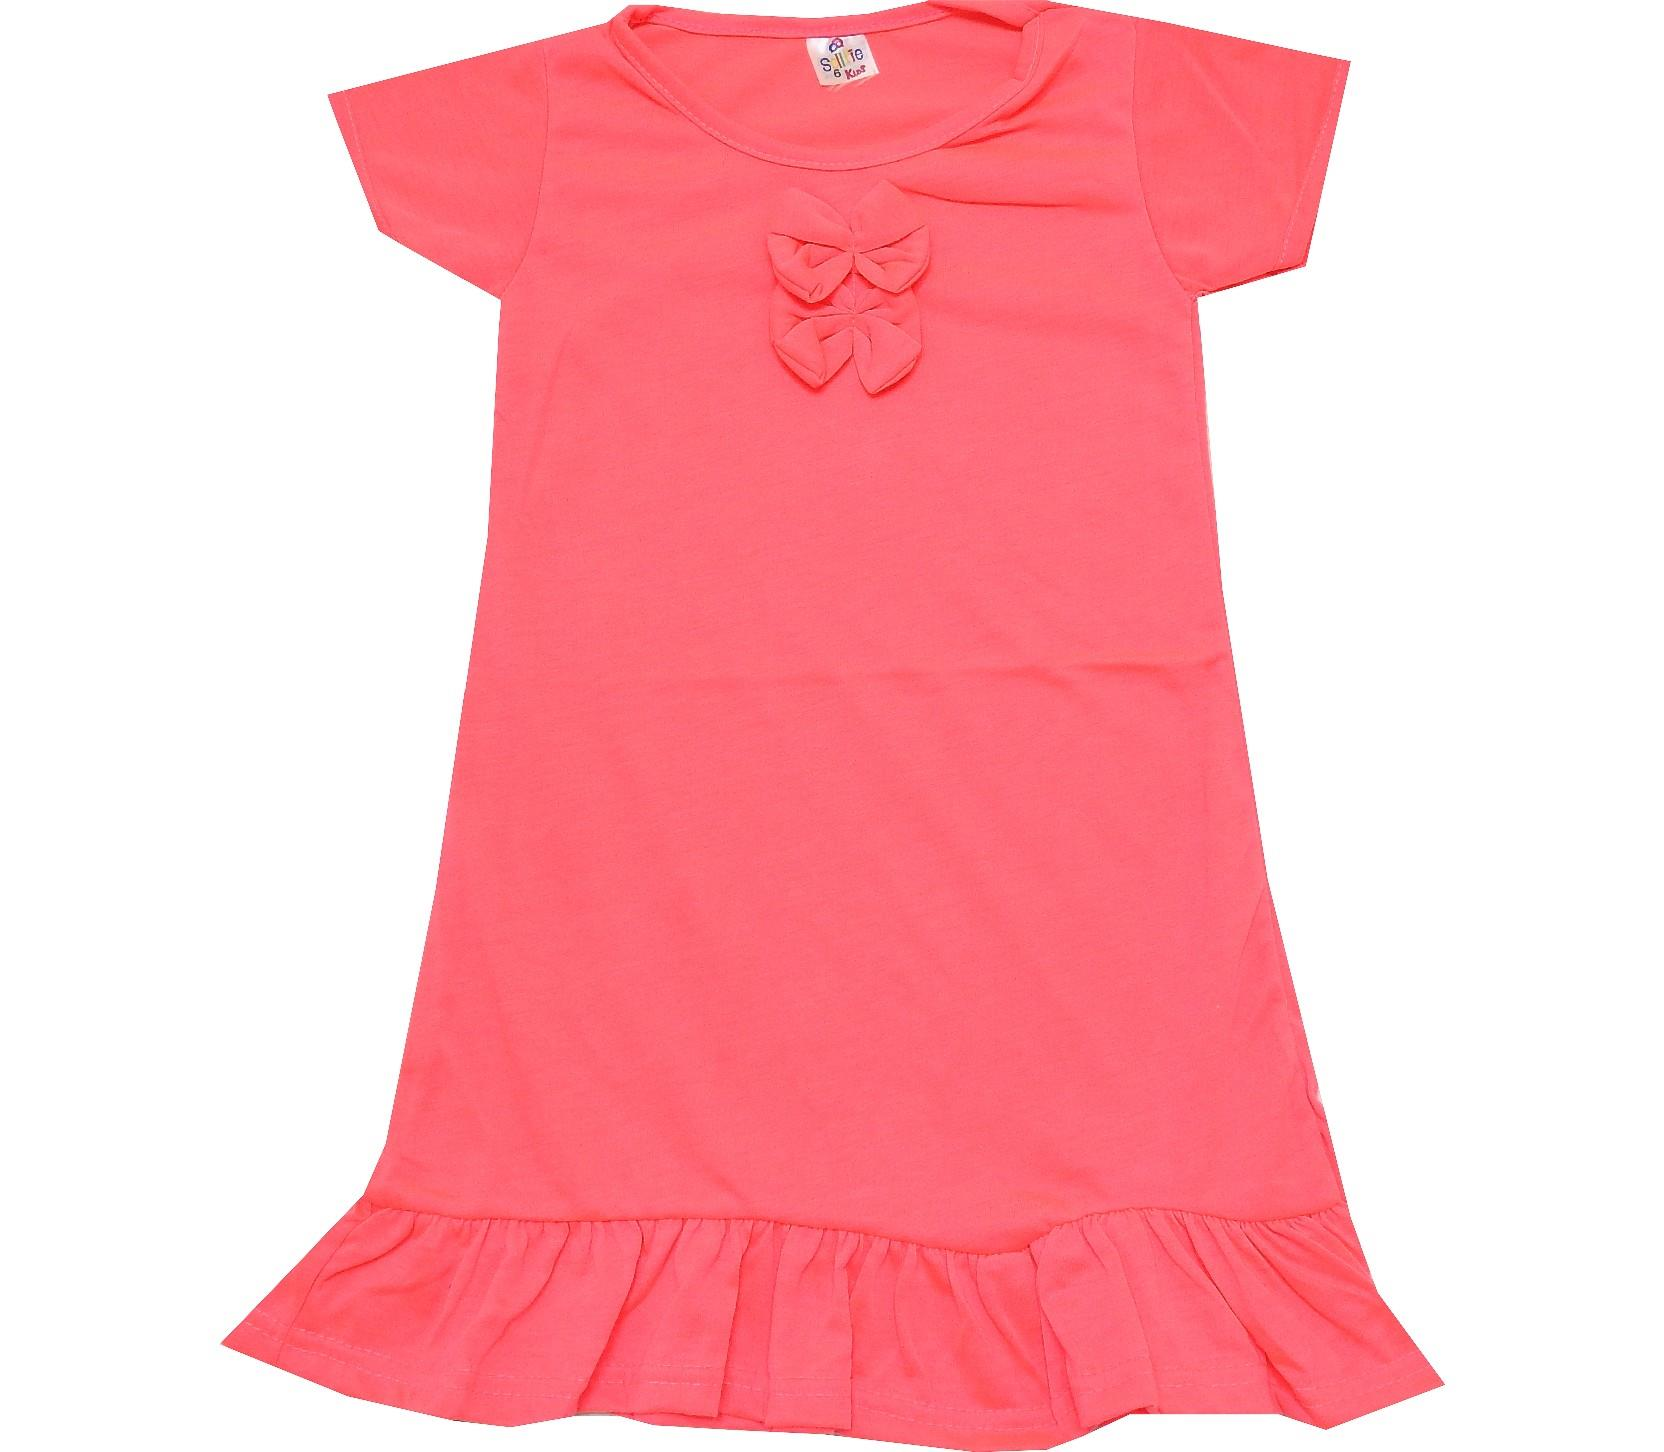 TWO RIBBON BUCKLE DESIGN DRESS (2-3-4-5-6 AGE)